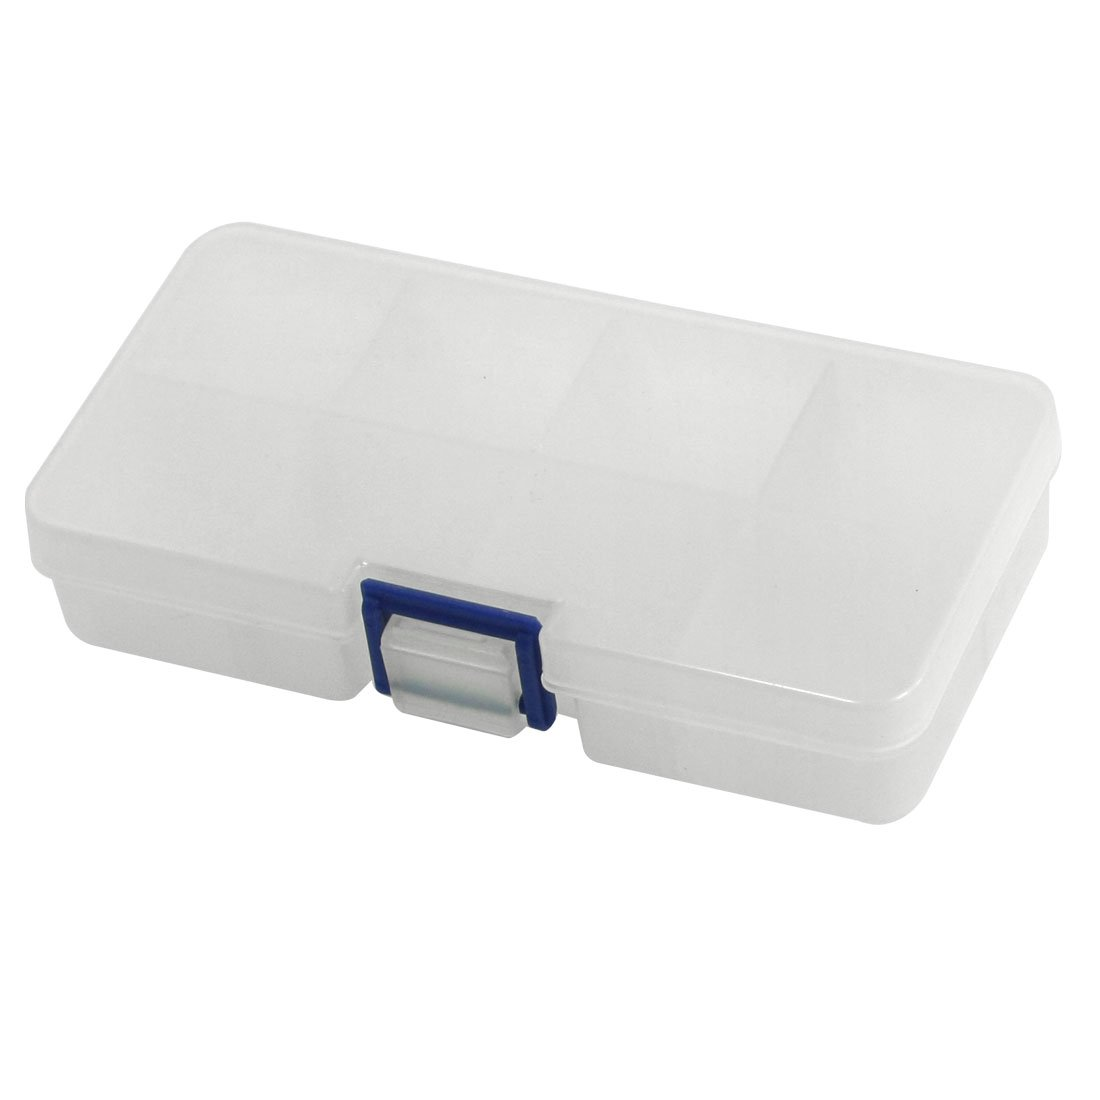 15 Grid Slots Storage Box Case For Jewelry Parts /& Electronic Components Storage